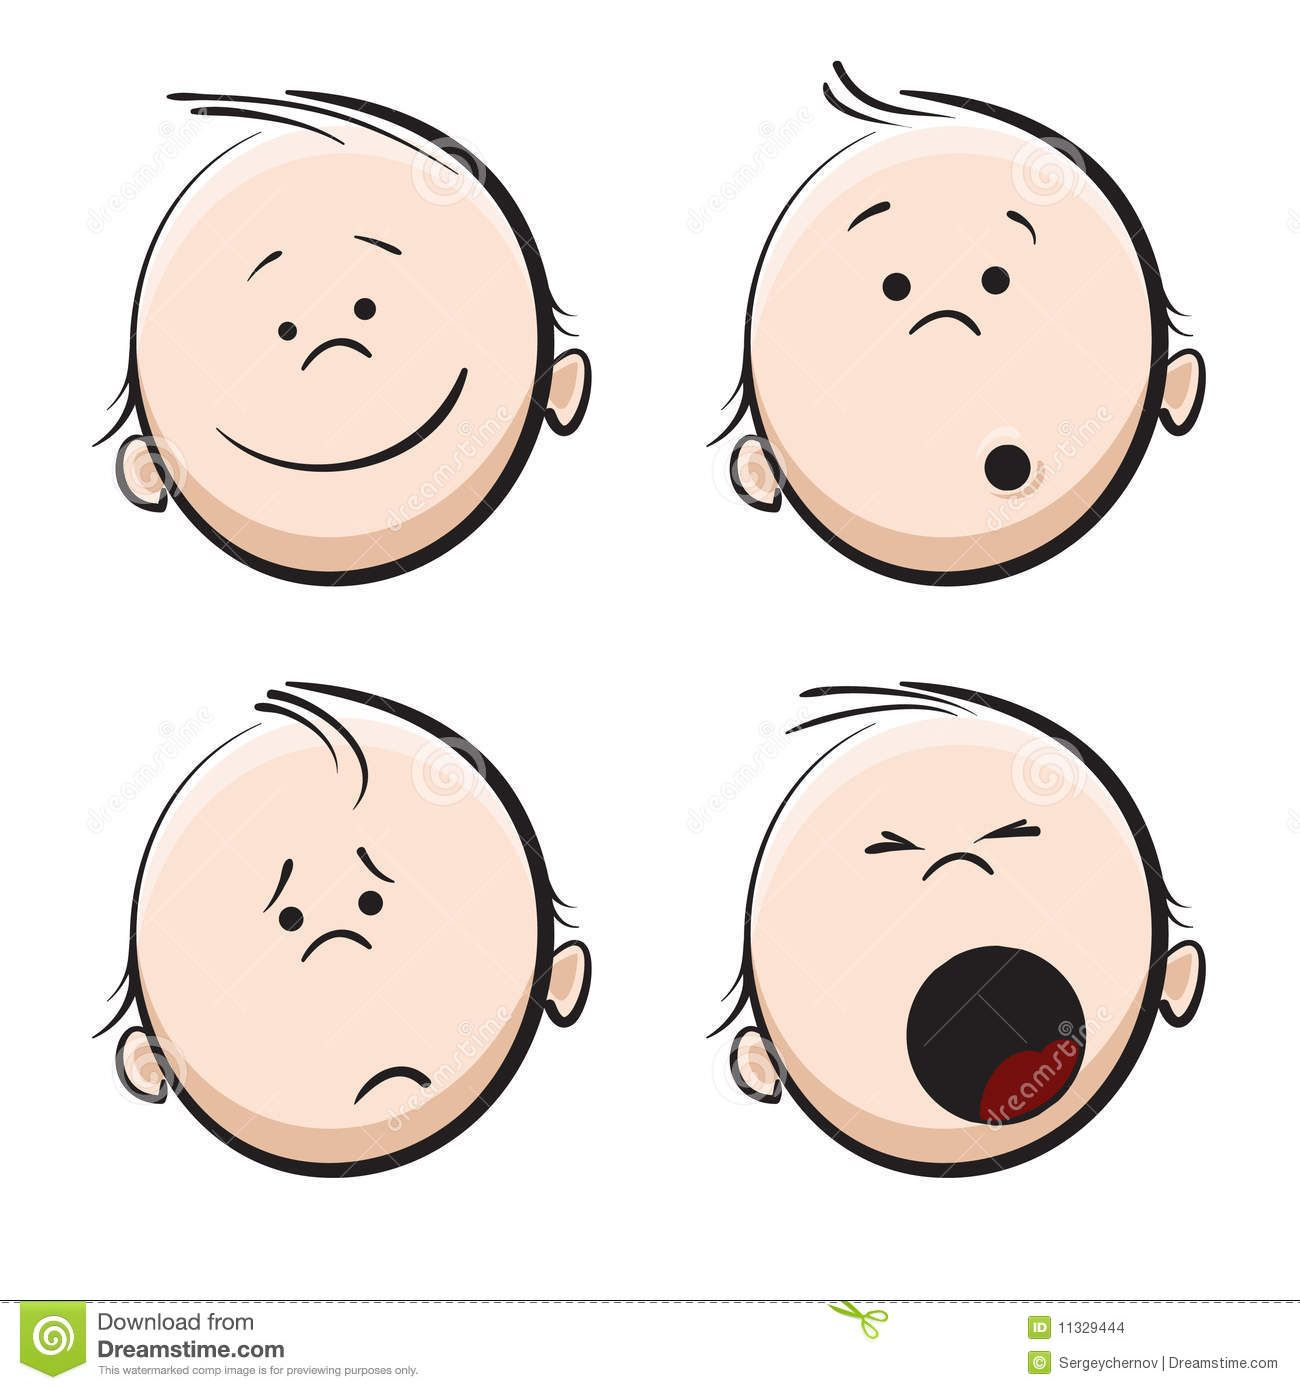 cute baby faces clipart.